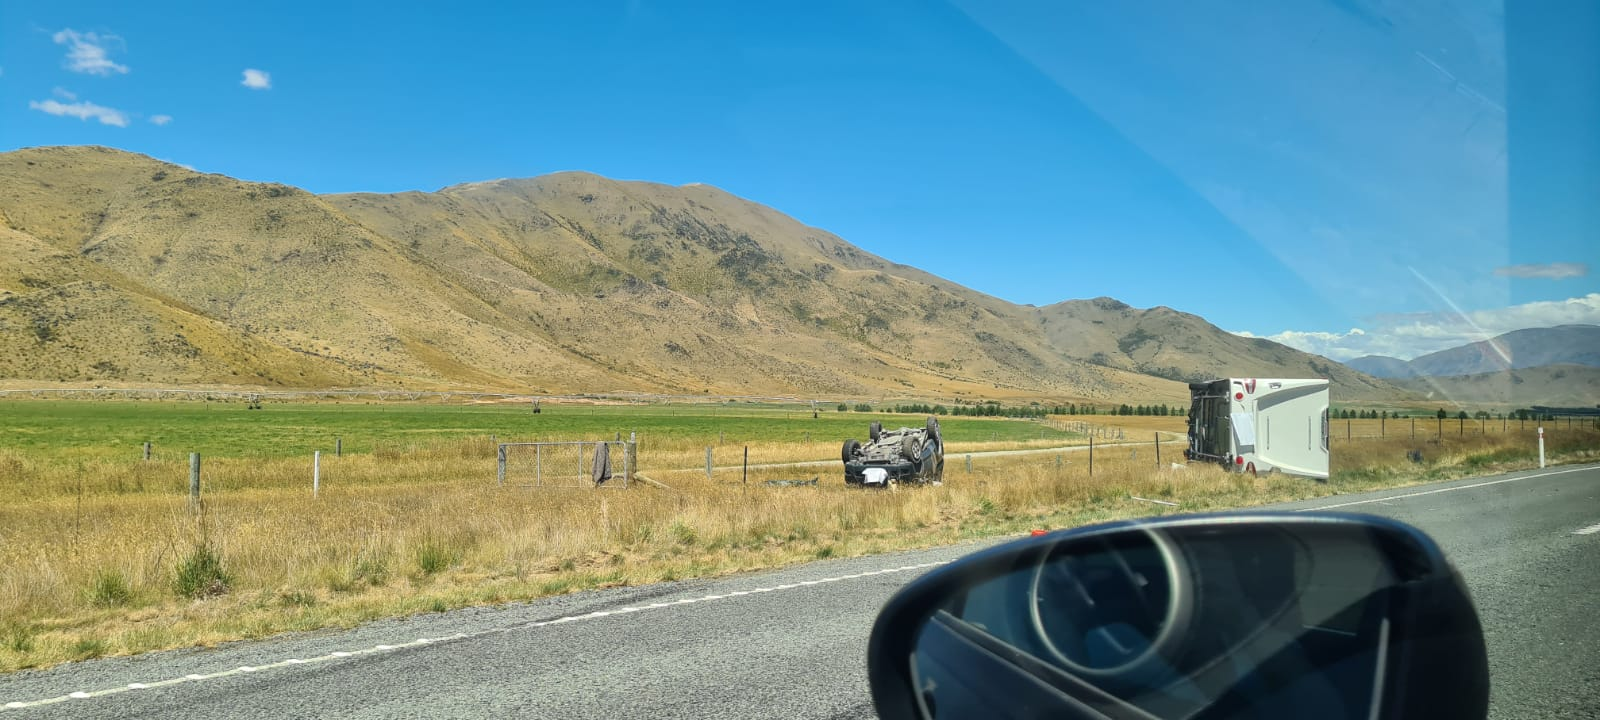 Emergency services were called to the crash on the Twizel-Omarama Rd about 12.30pm. Photo supplied